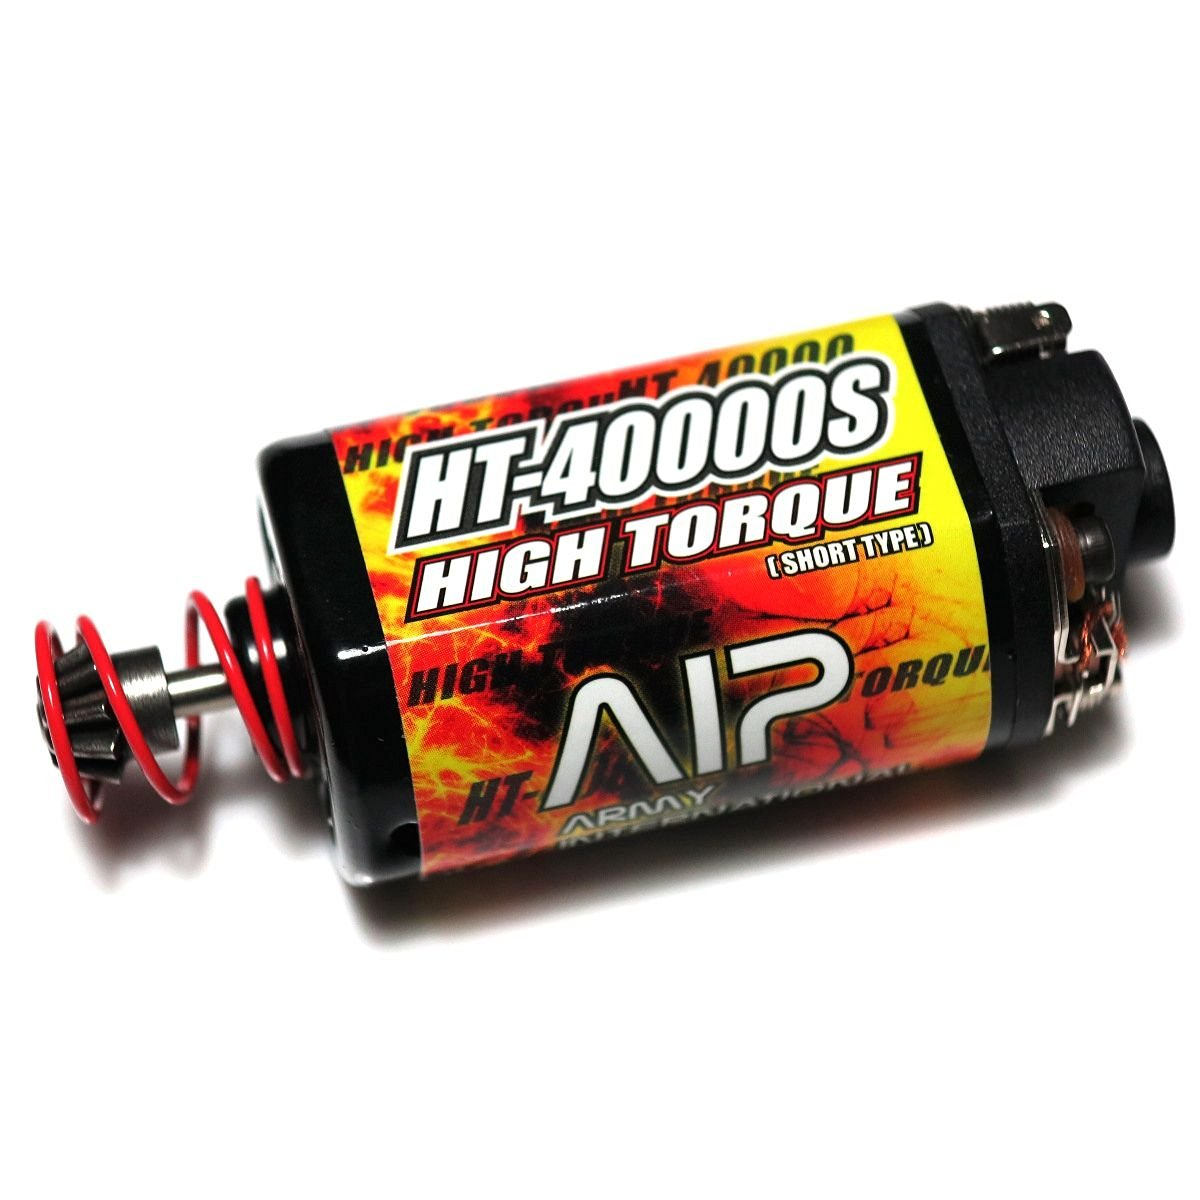 AEG Airsoft Wargame Shooting Gear AIP AIP005 High Torque AEG Motor HT-40000 (Short Type)